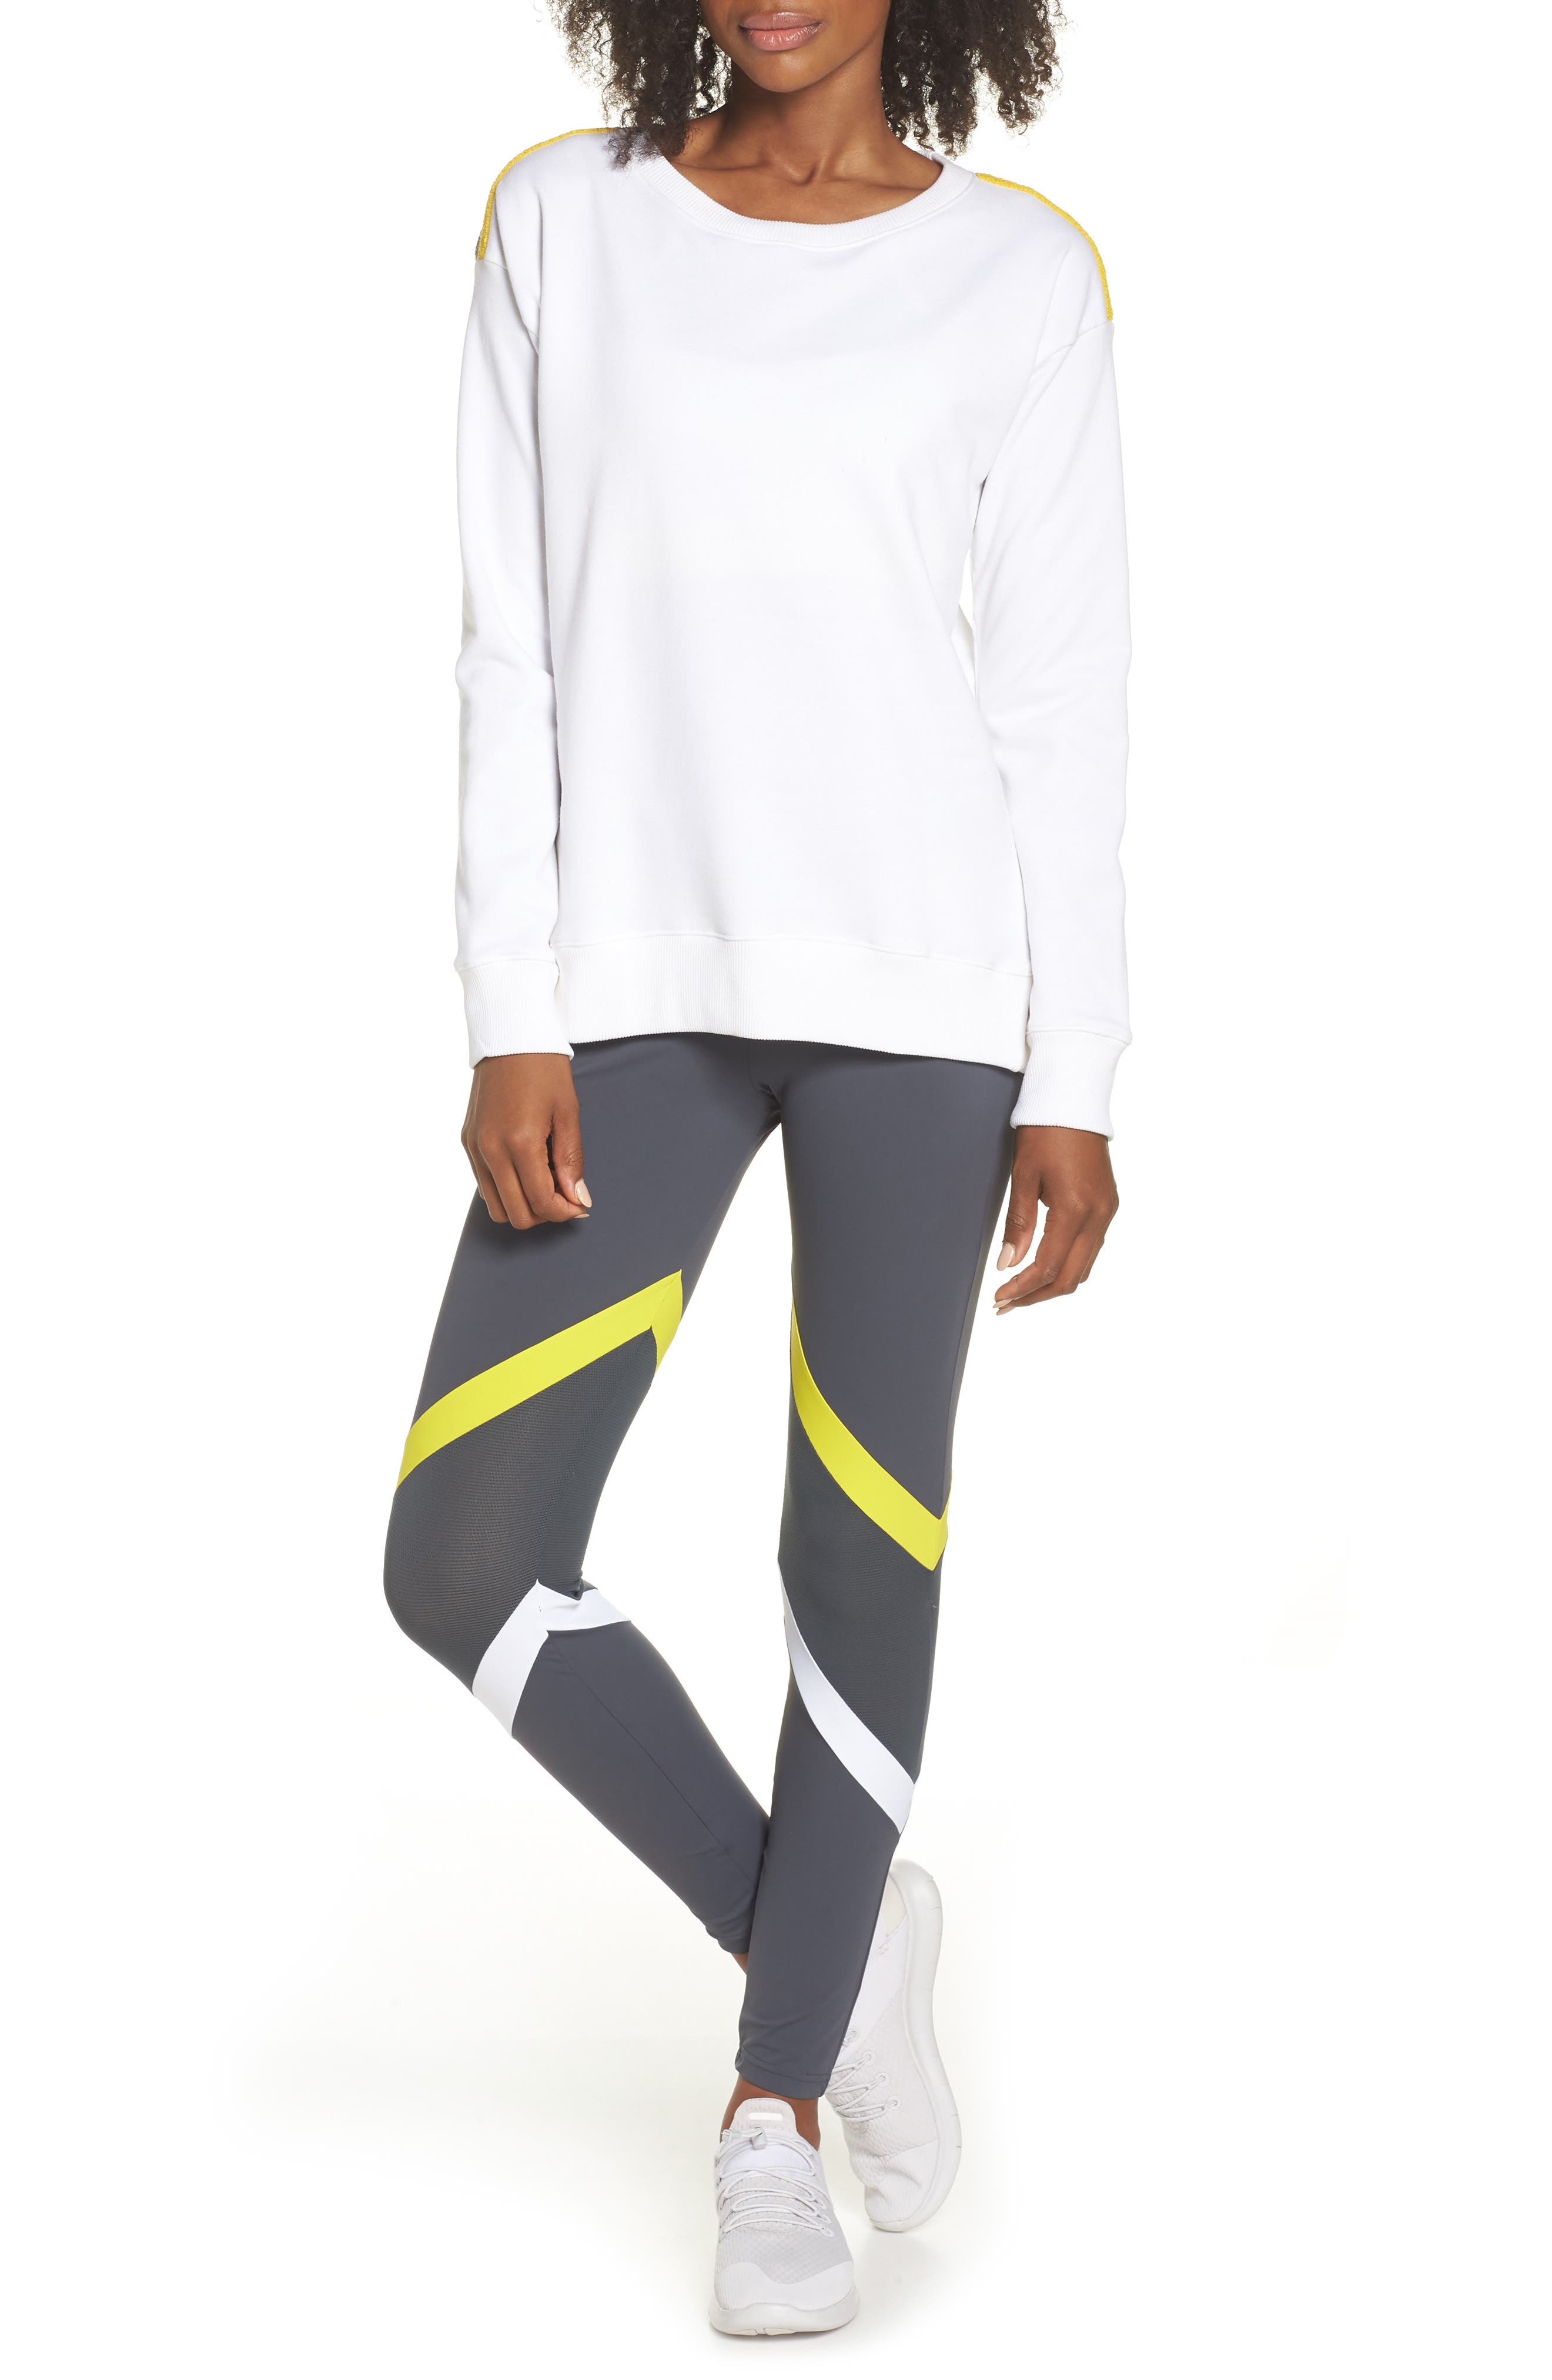 BoomBoom Athletica Tricolor Shoulder Sweatshirt,                             Alternate thumbnail 8, color,                             WHITE/ GREY/ YELLOW